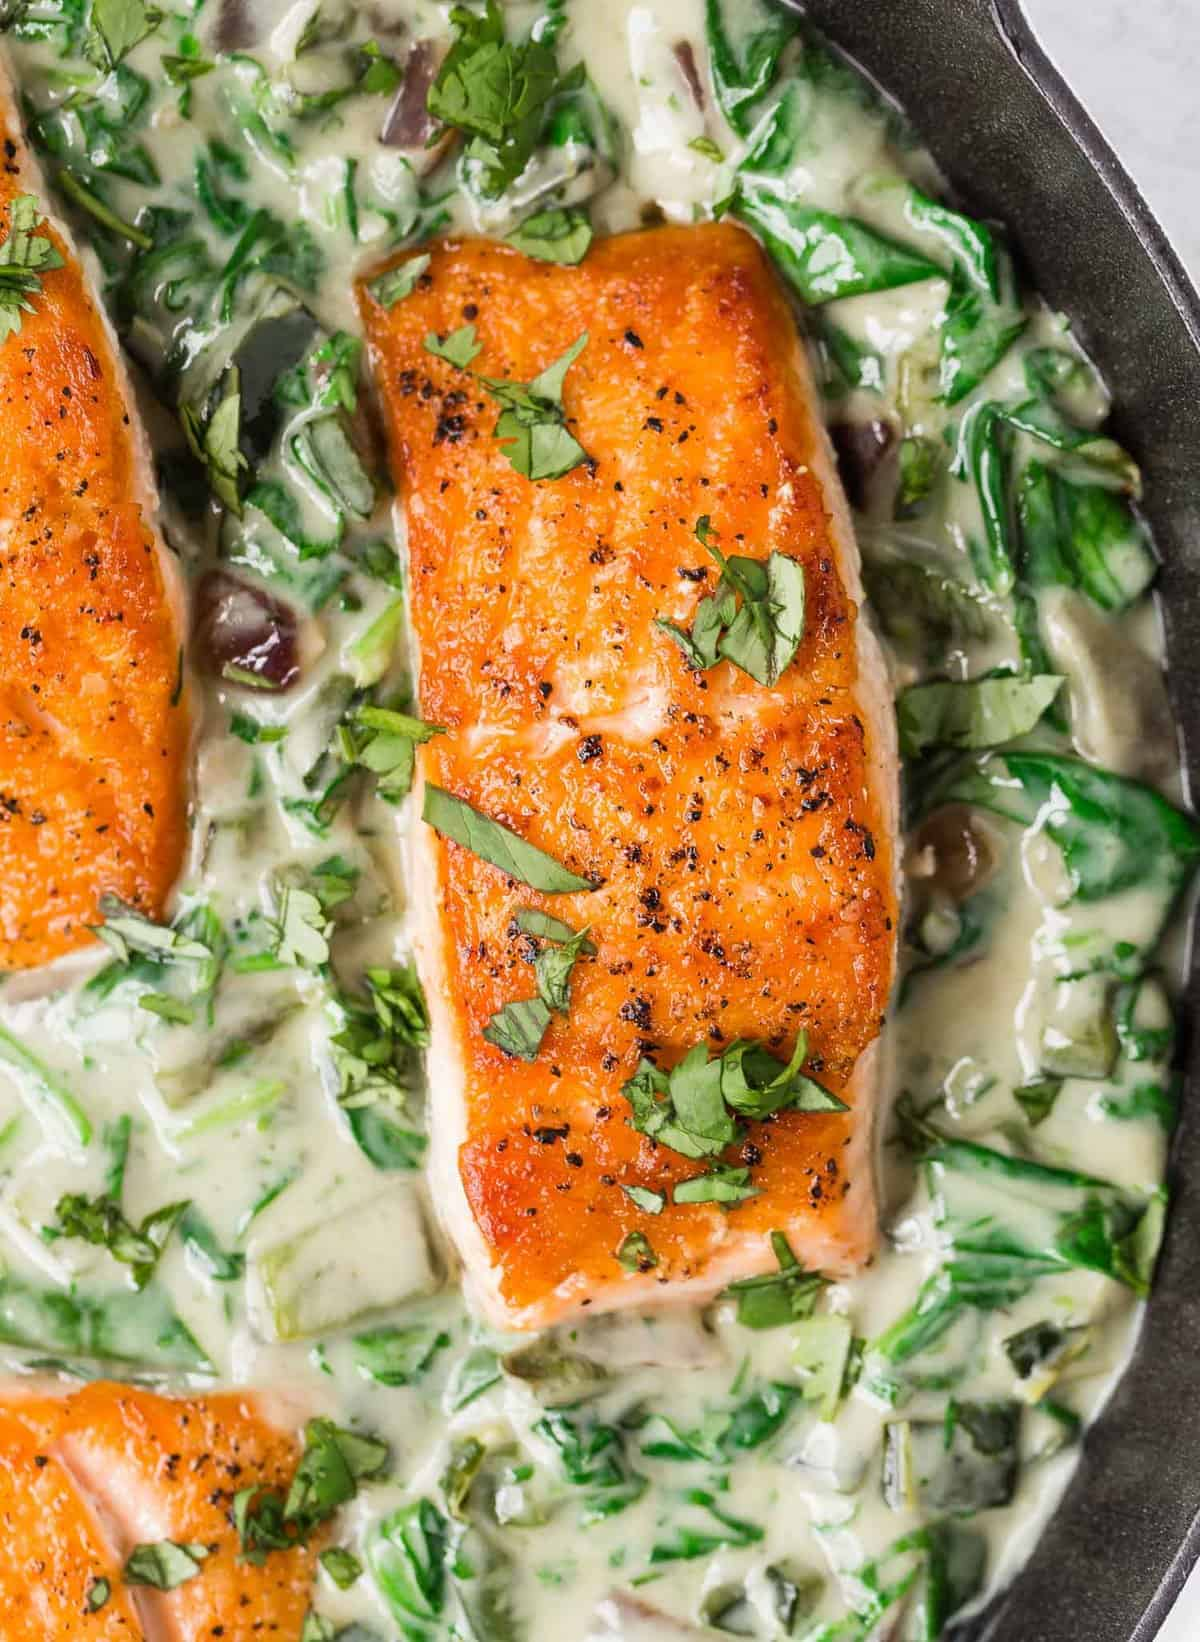 Overhead view of seared salmon in a bed of creamy spinach sauce.